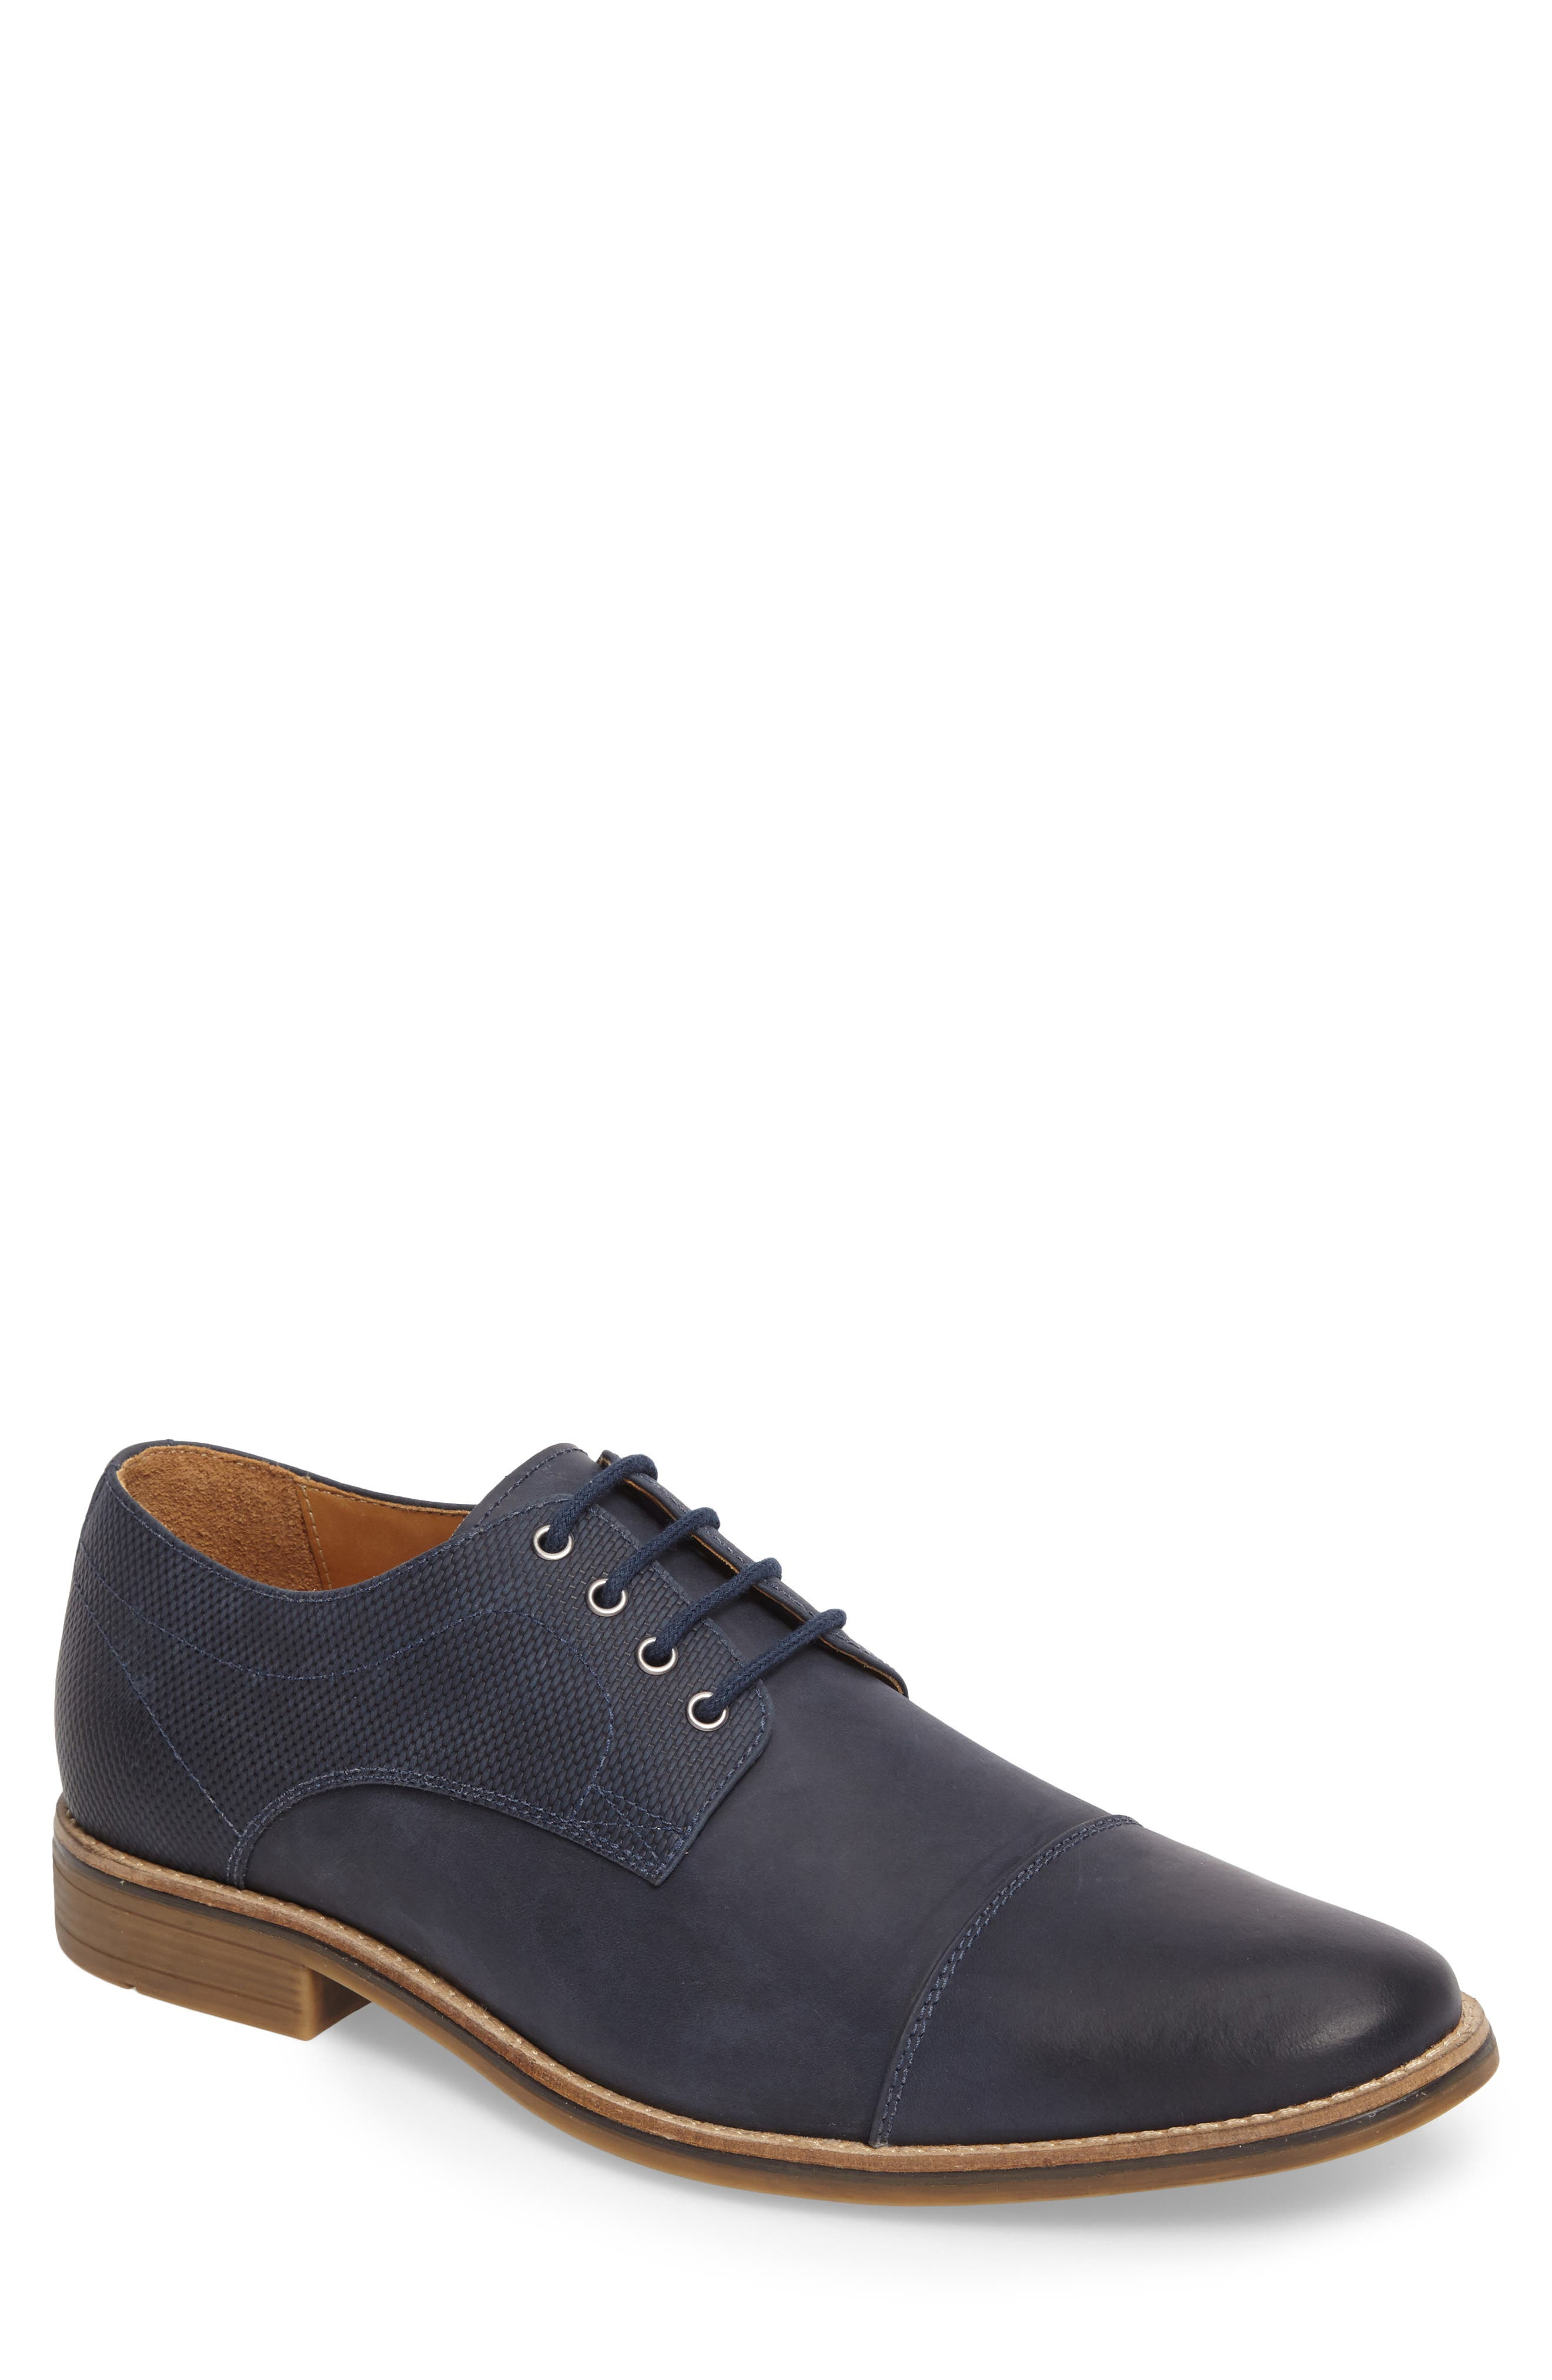 Goleta Cap Toe Derby,                             Main thumbnail 1, color,                             Navy Leather